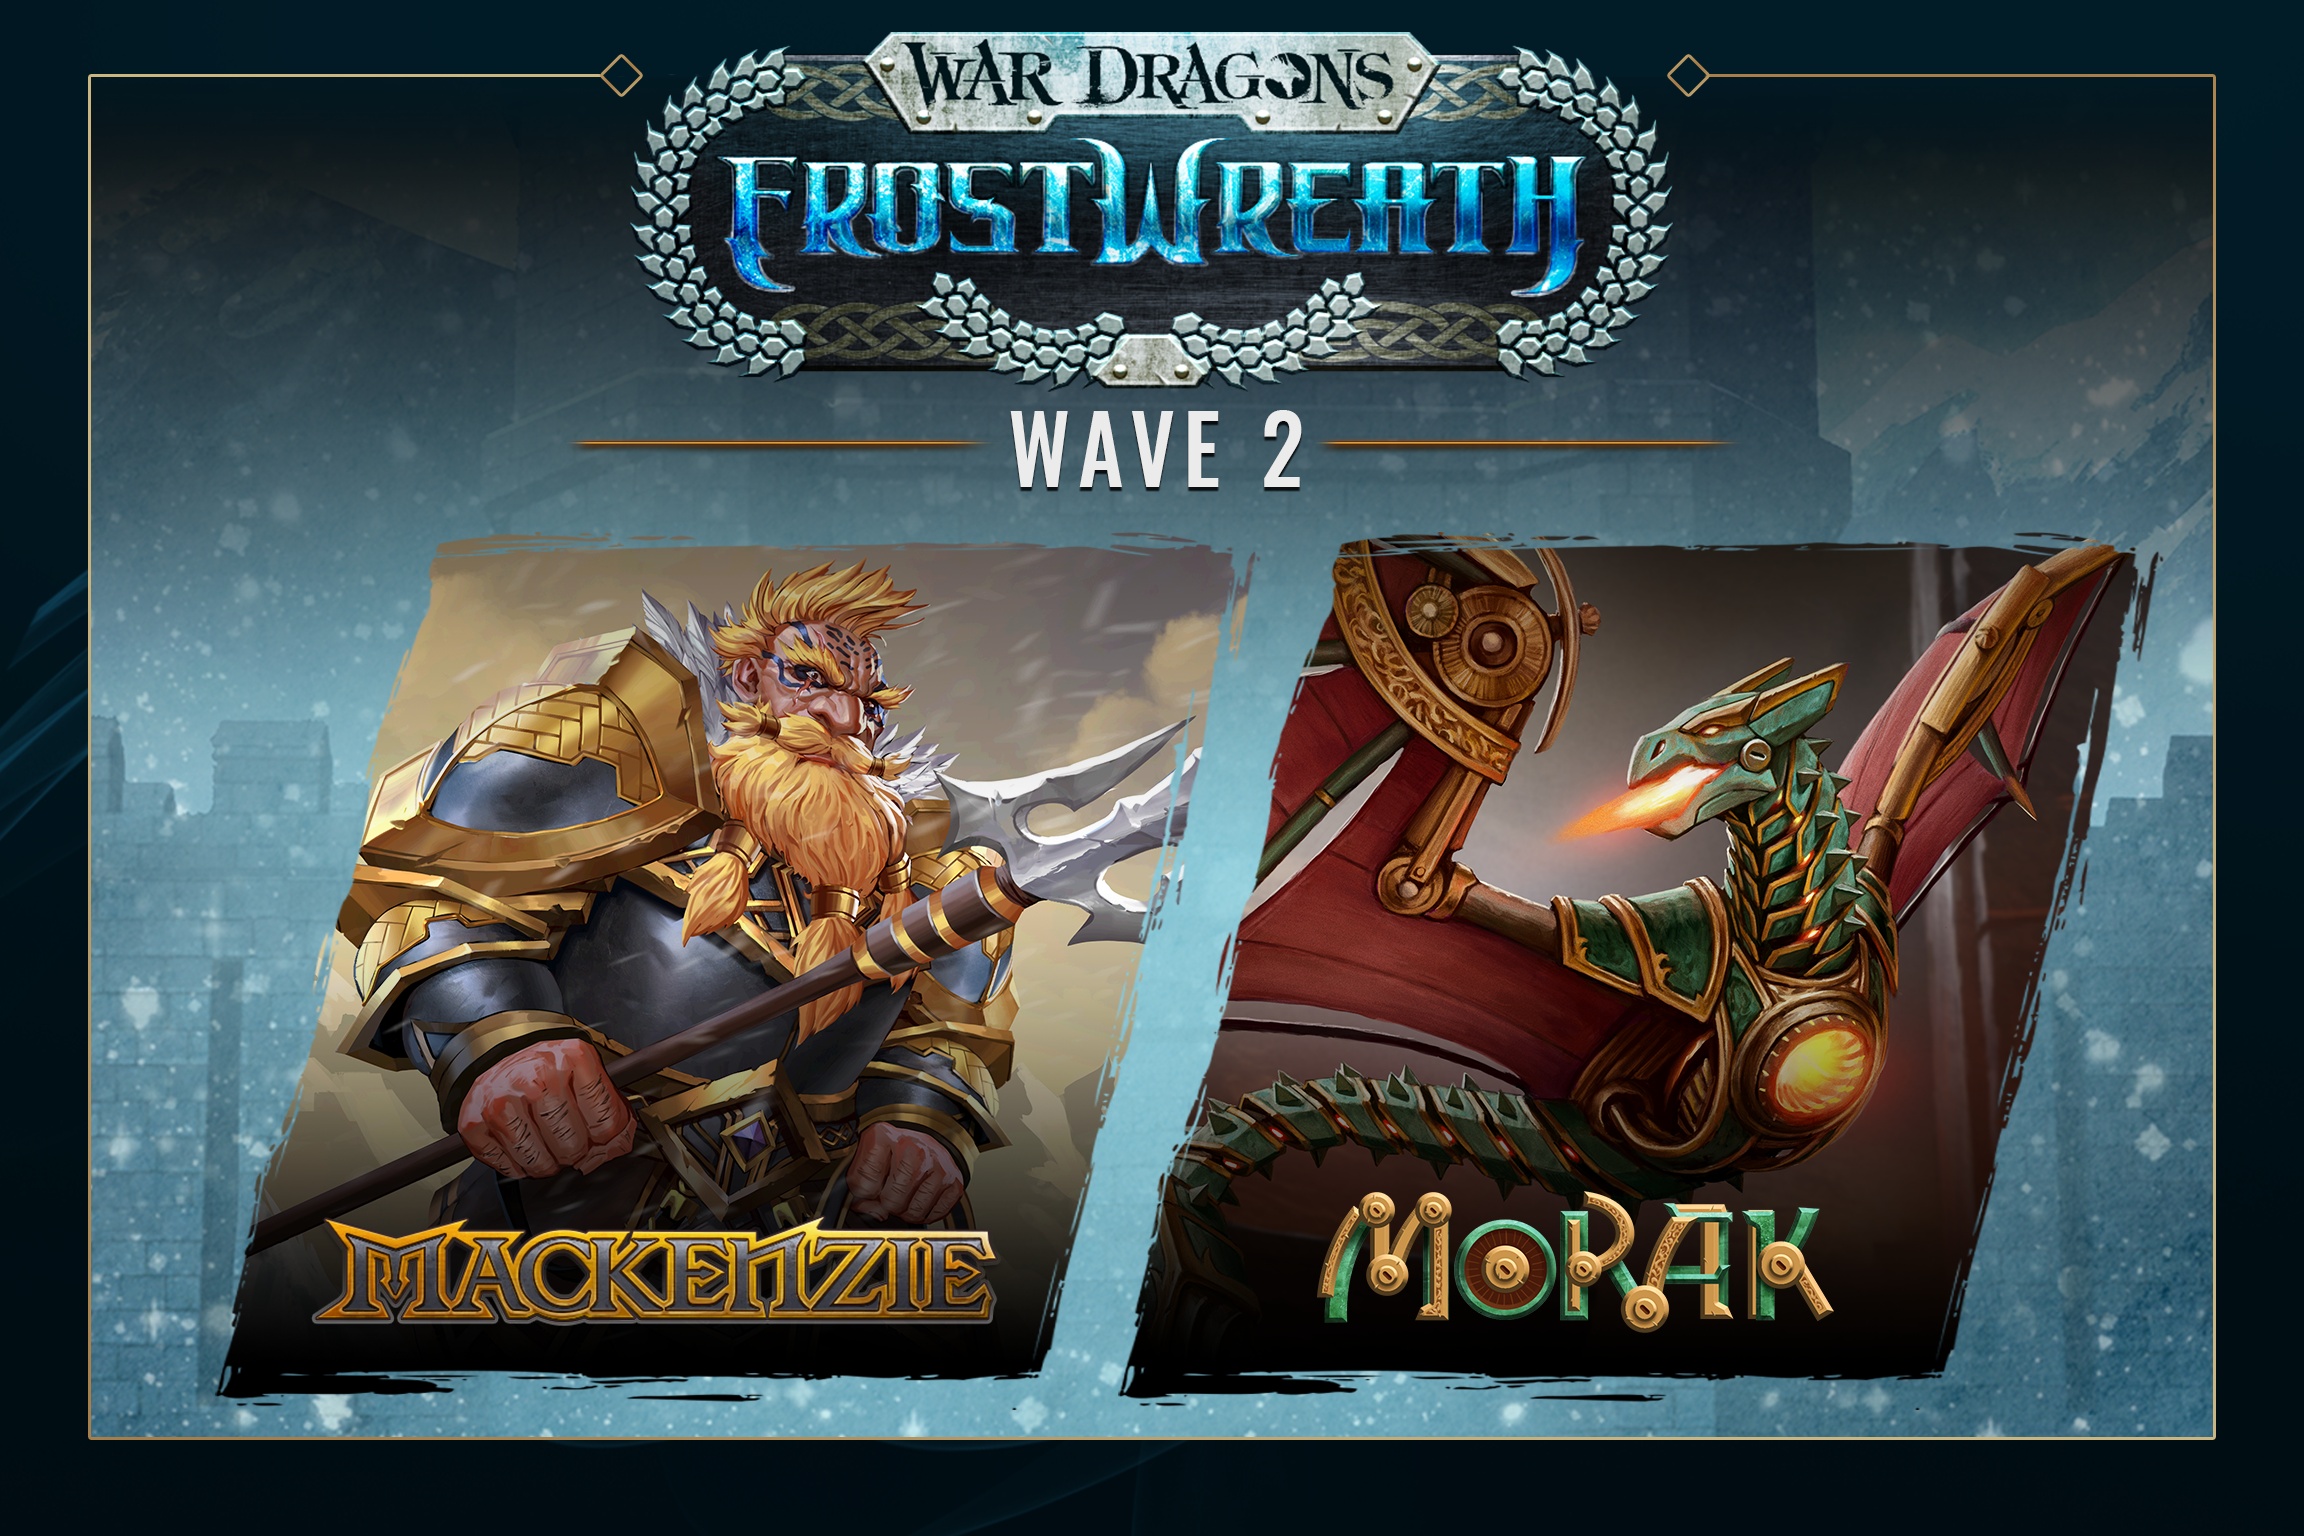 Frostwreath Wave 2 Announce